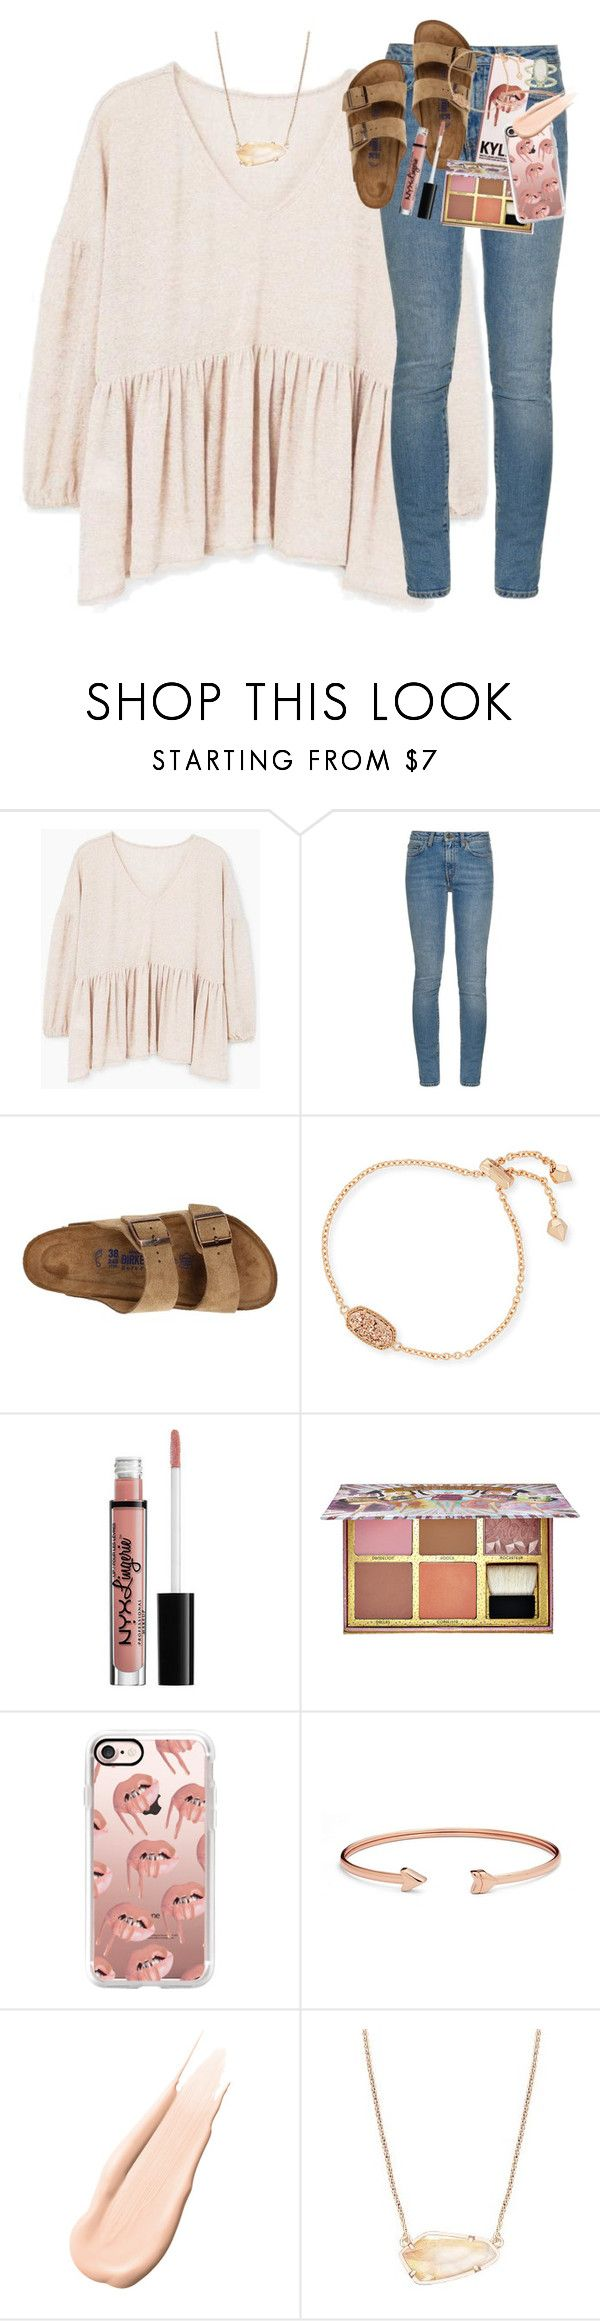 """when i count my blessings i count you twice ;)"" by classynsouthern ❤ liked on Polyvore featuring MANGO, Yves Saint Laurent, Birkenstock, Kendra Scott, Benefit, Casetify, FOSSIL and Hourglass Cosmetics"